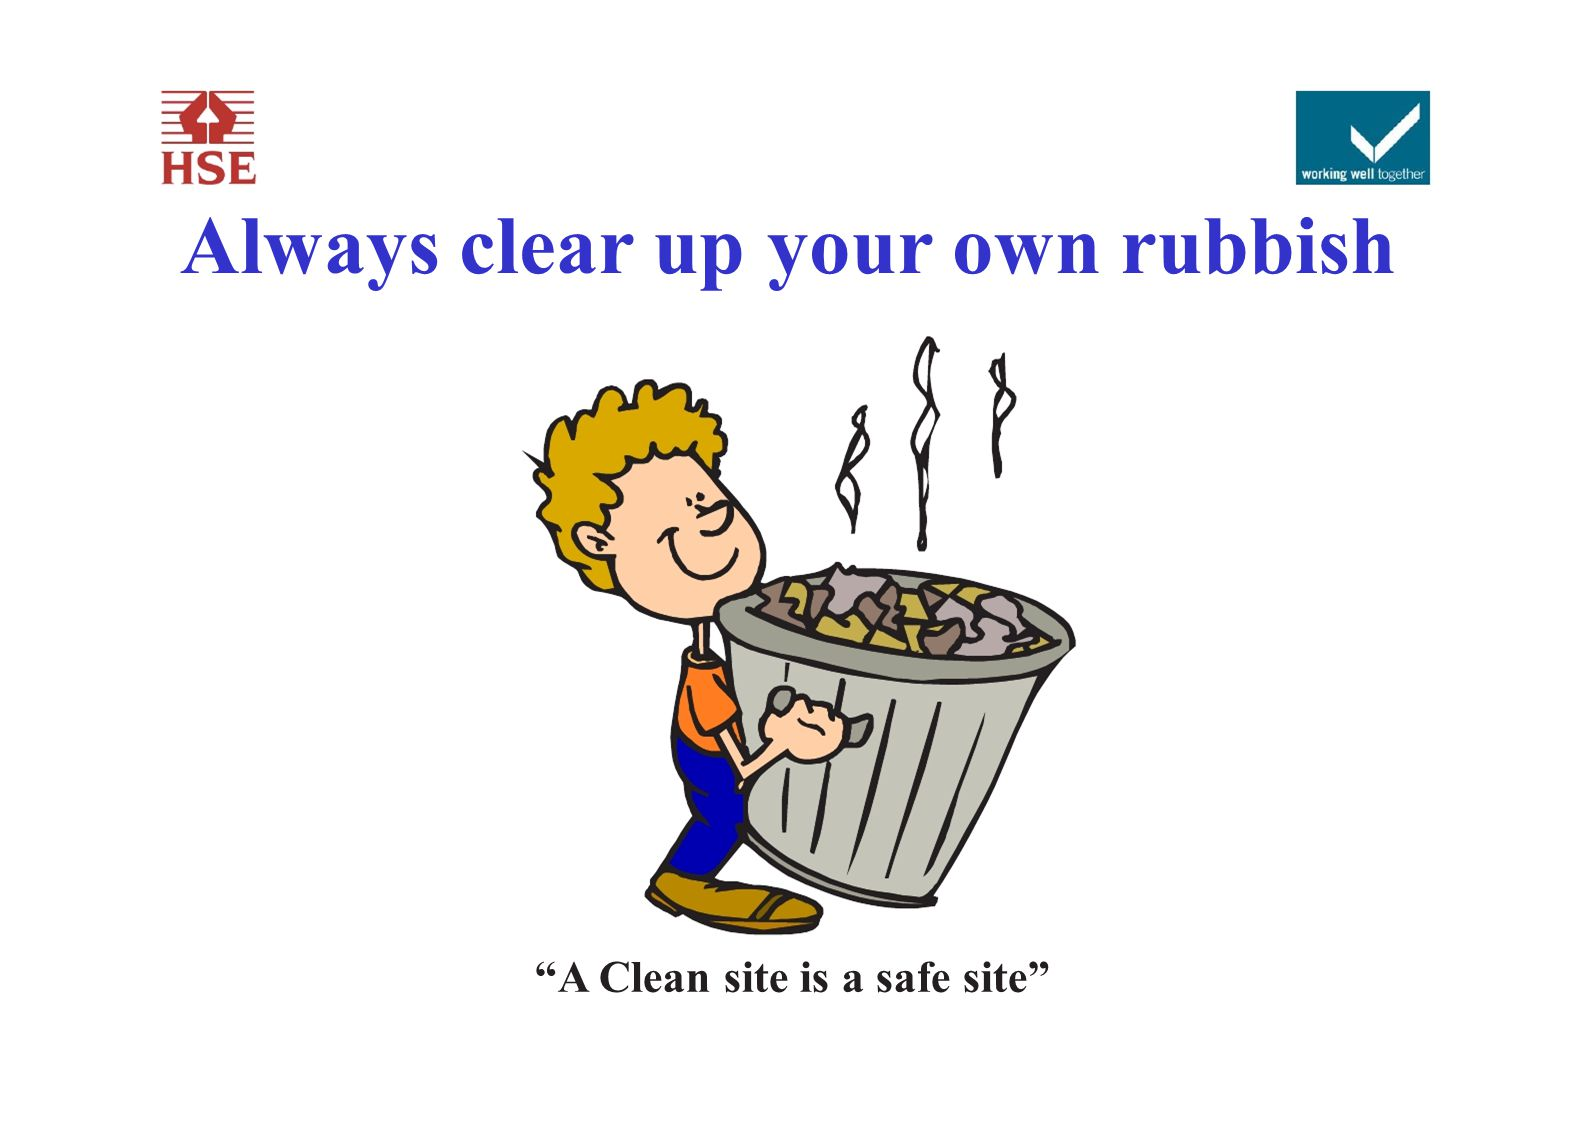 Always clear up your own rubbish